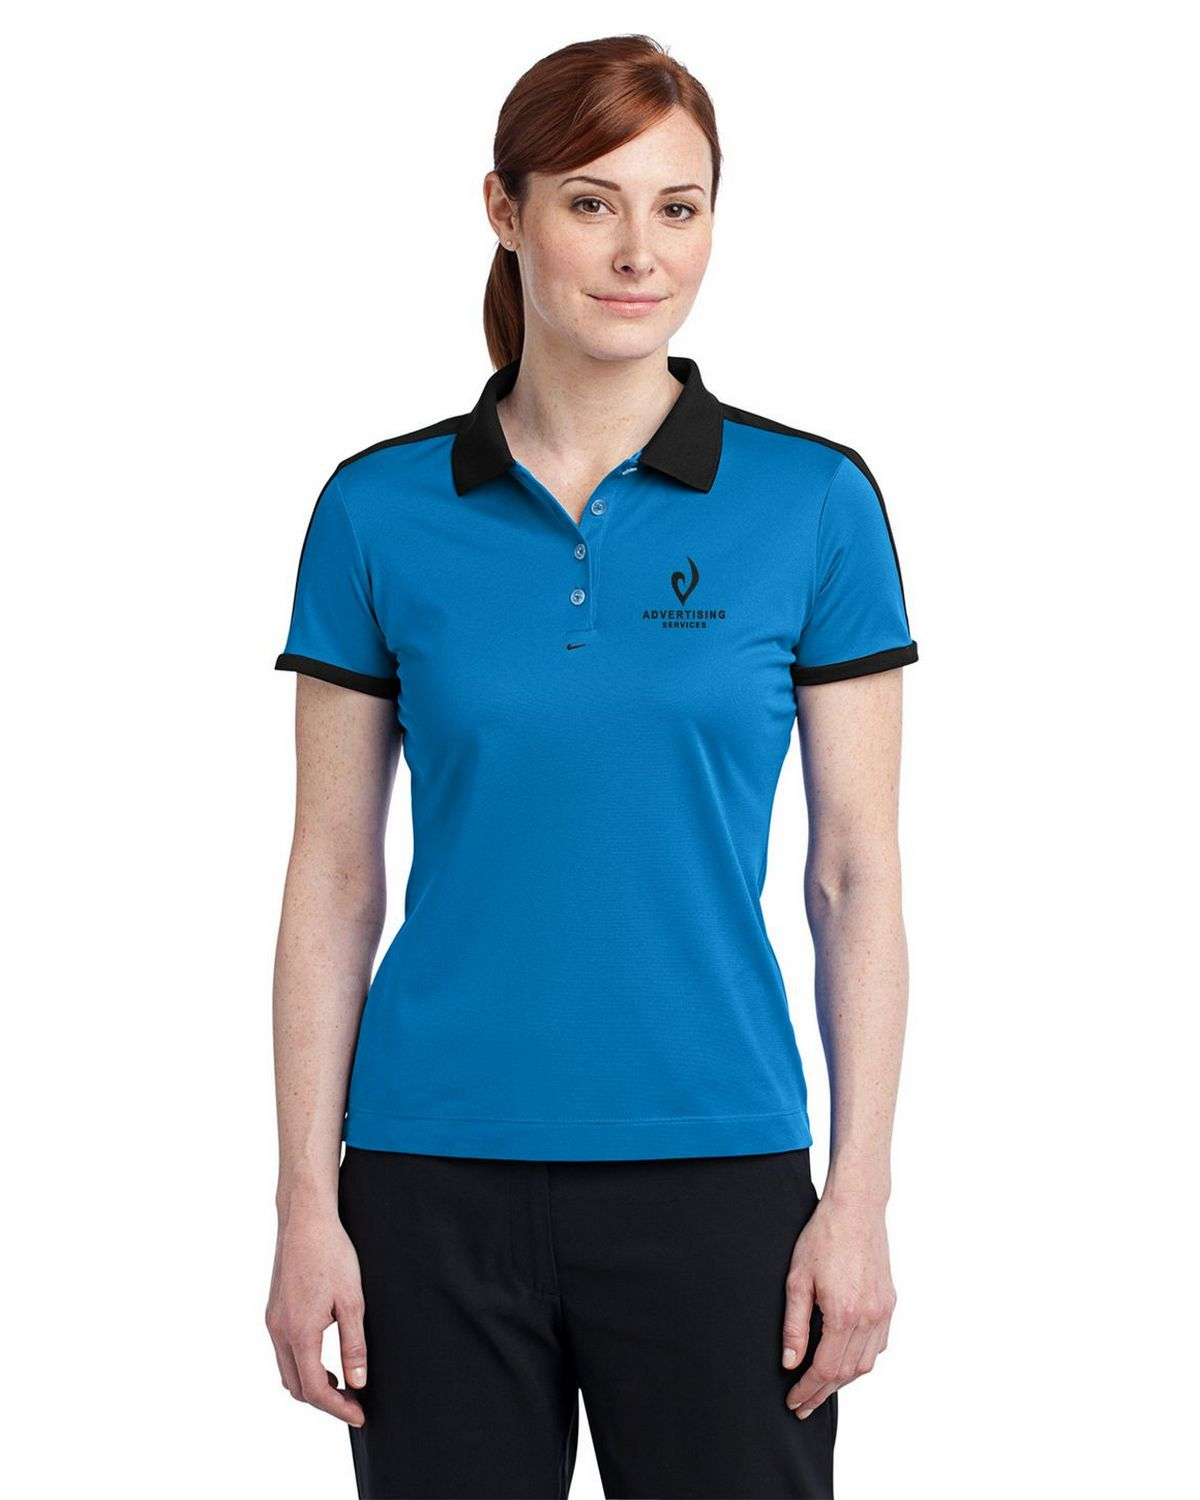 Nike golf dri fit n98 logo embroidered polo at for Nike dri fit embroidered shirts